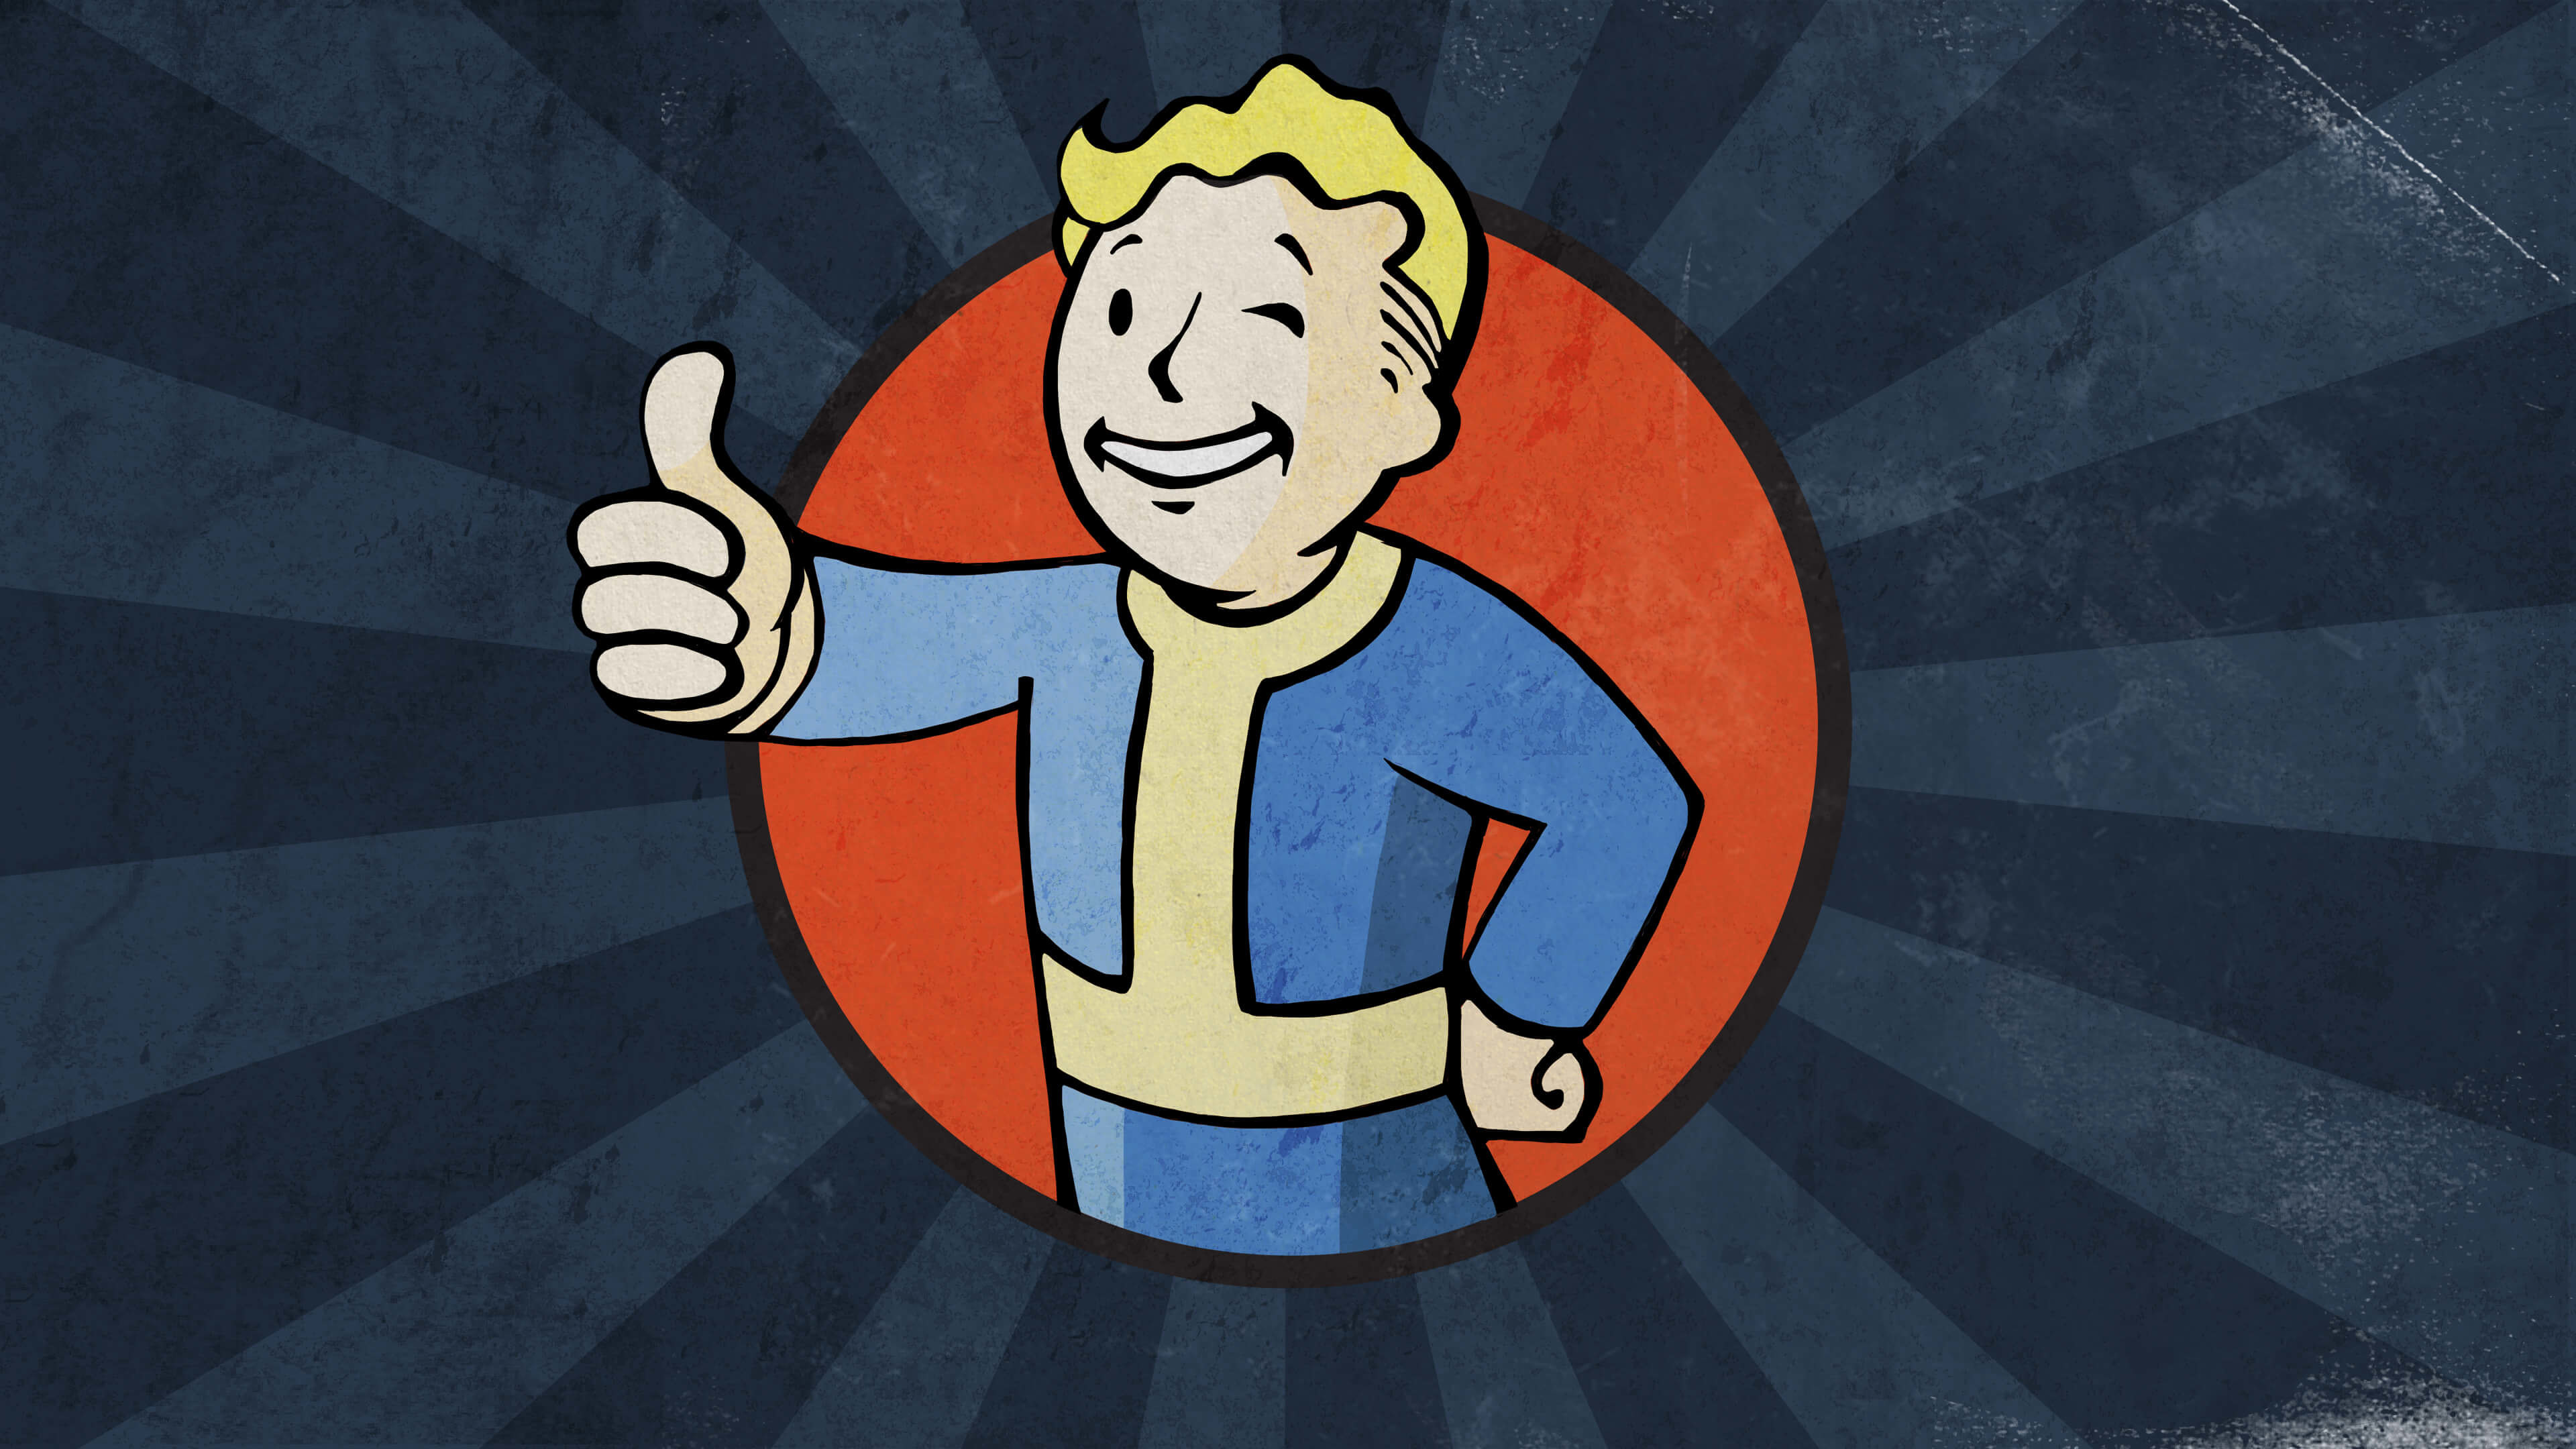 Fallout 4 Vault Boy Wallpaper 74 Images